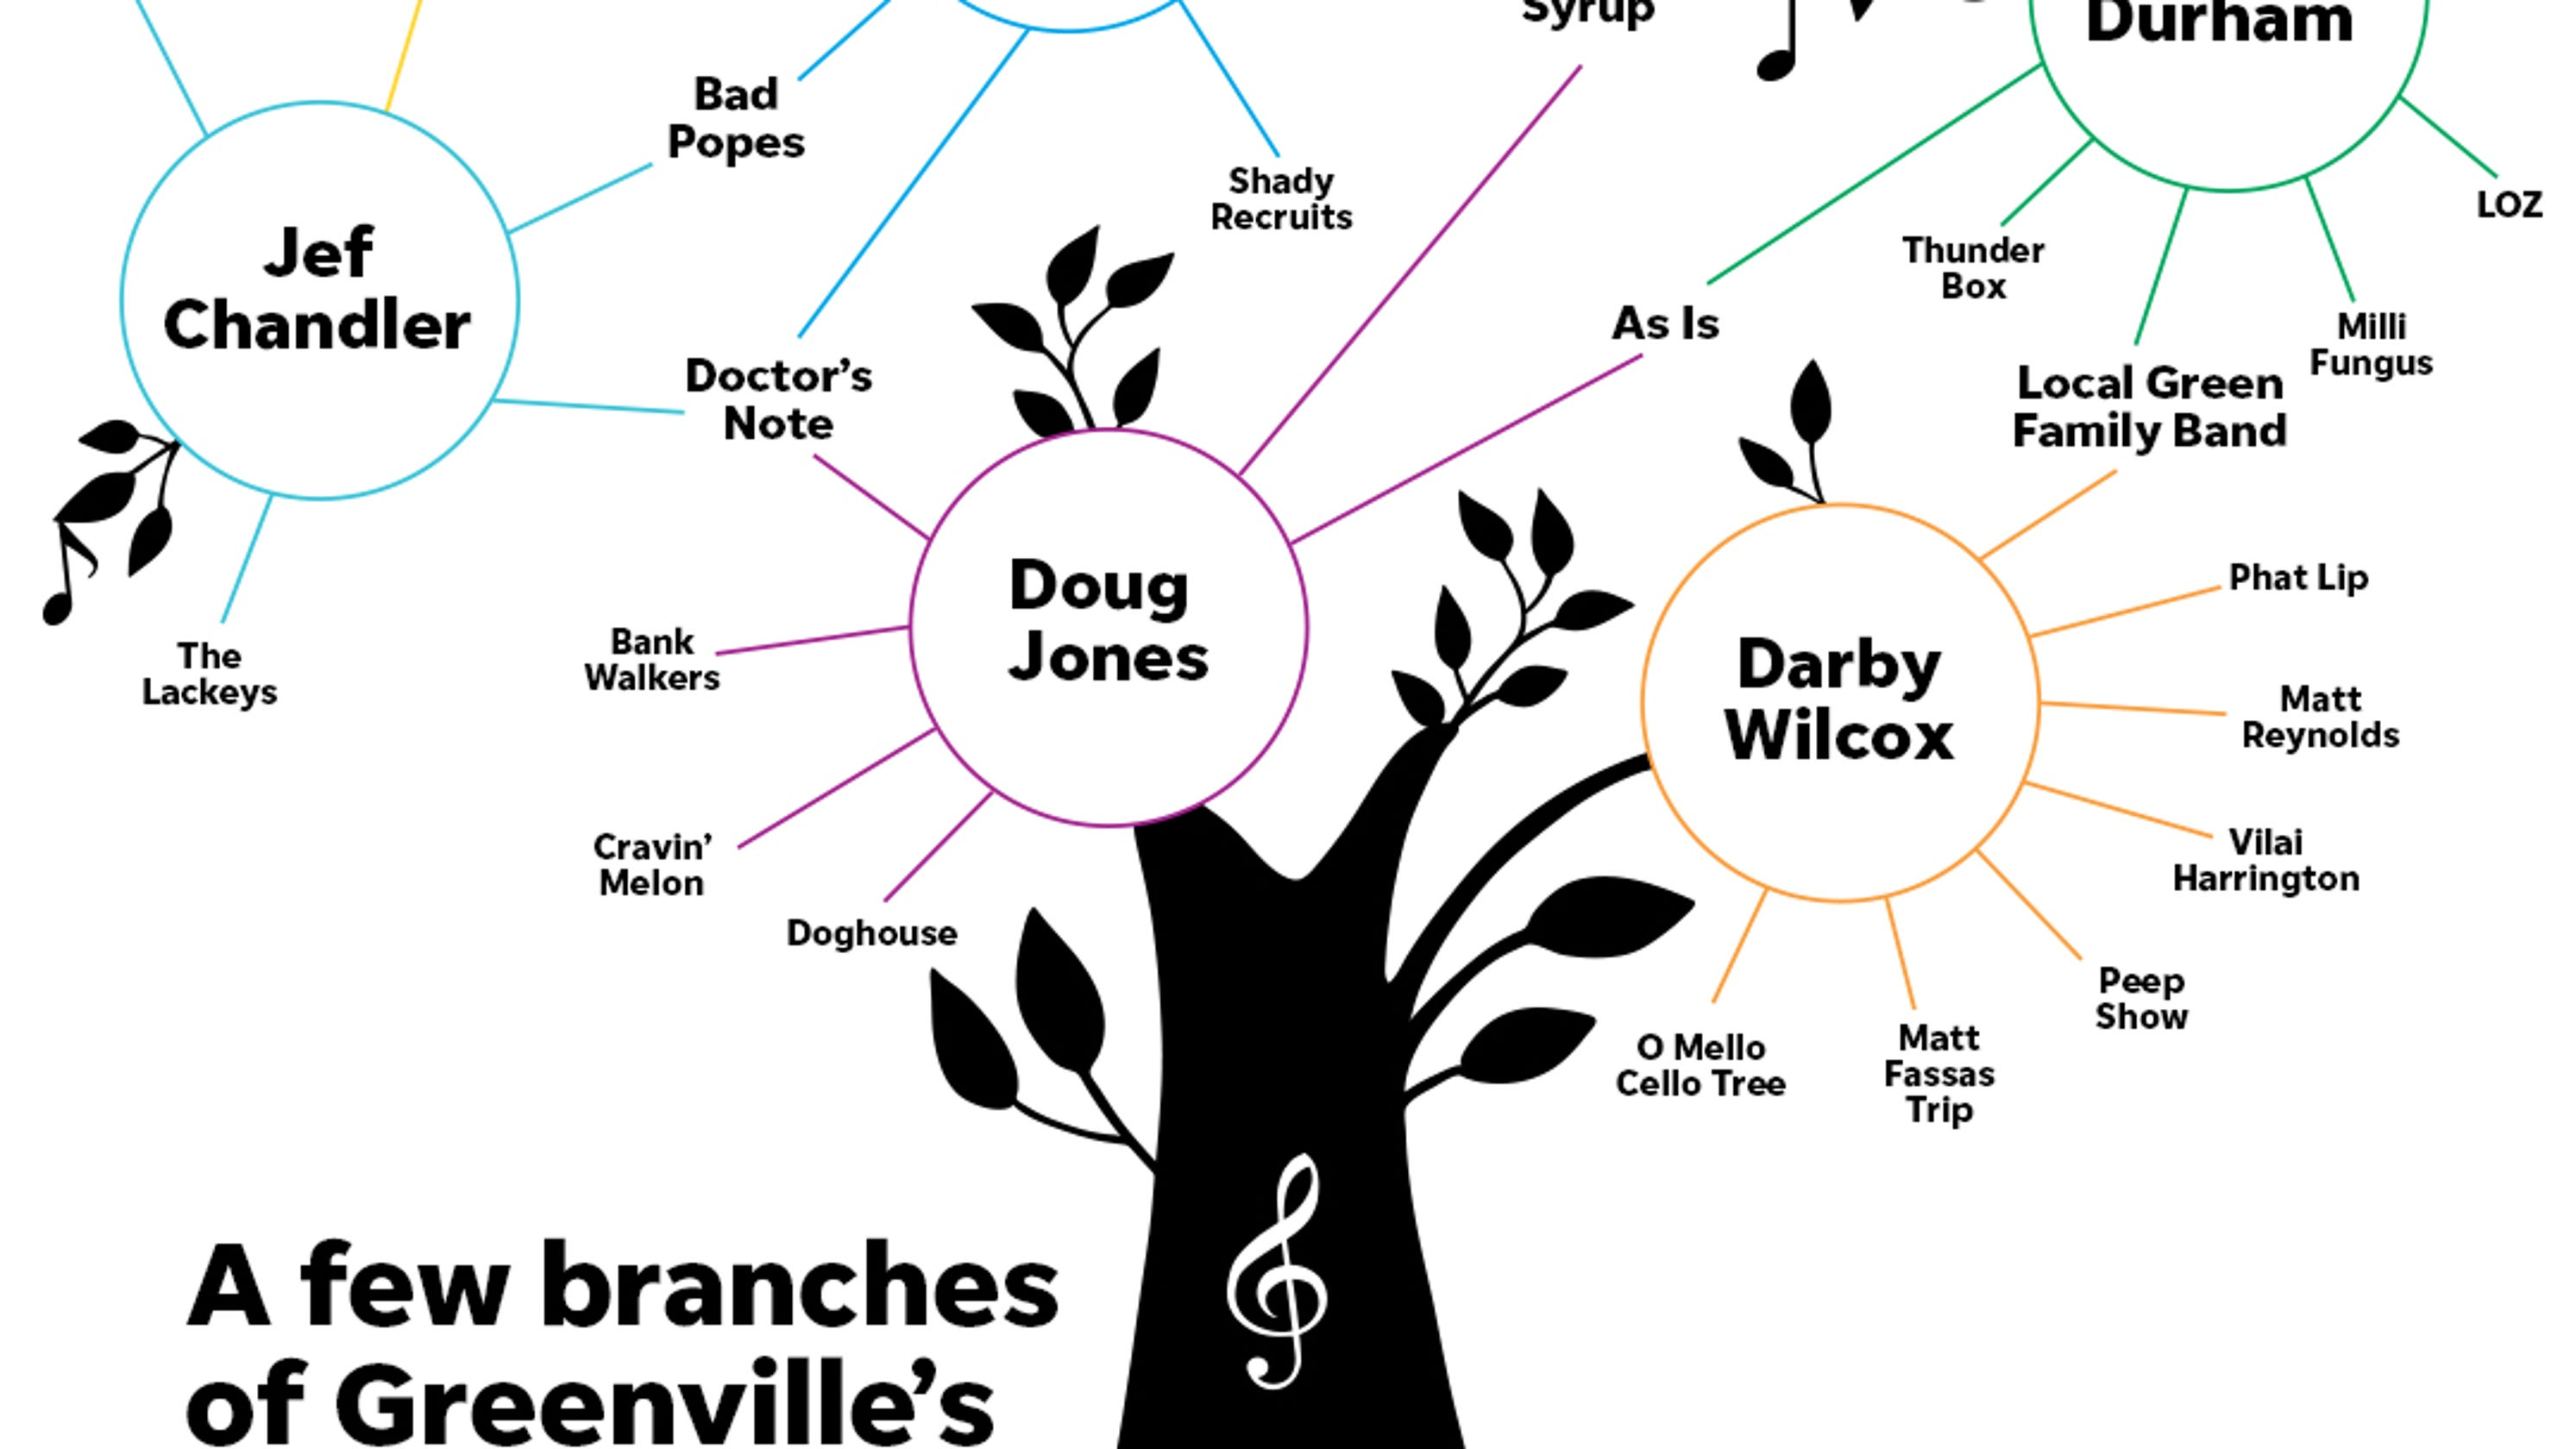 The roots and branches of Greenville's local music family tree